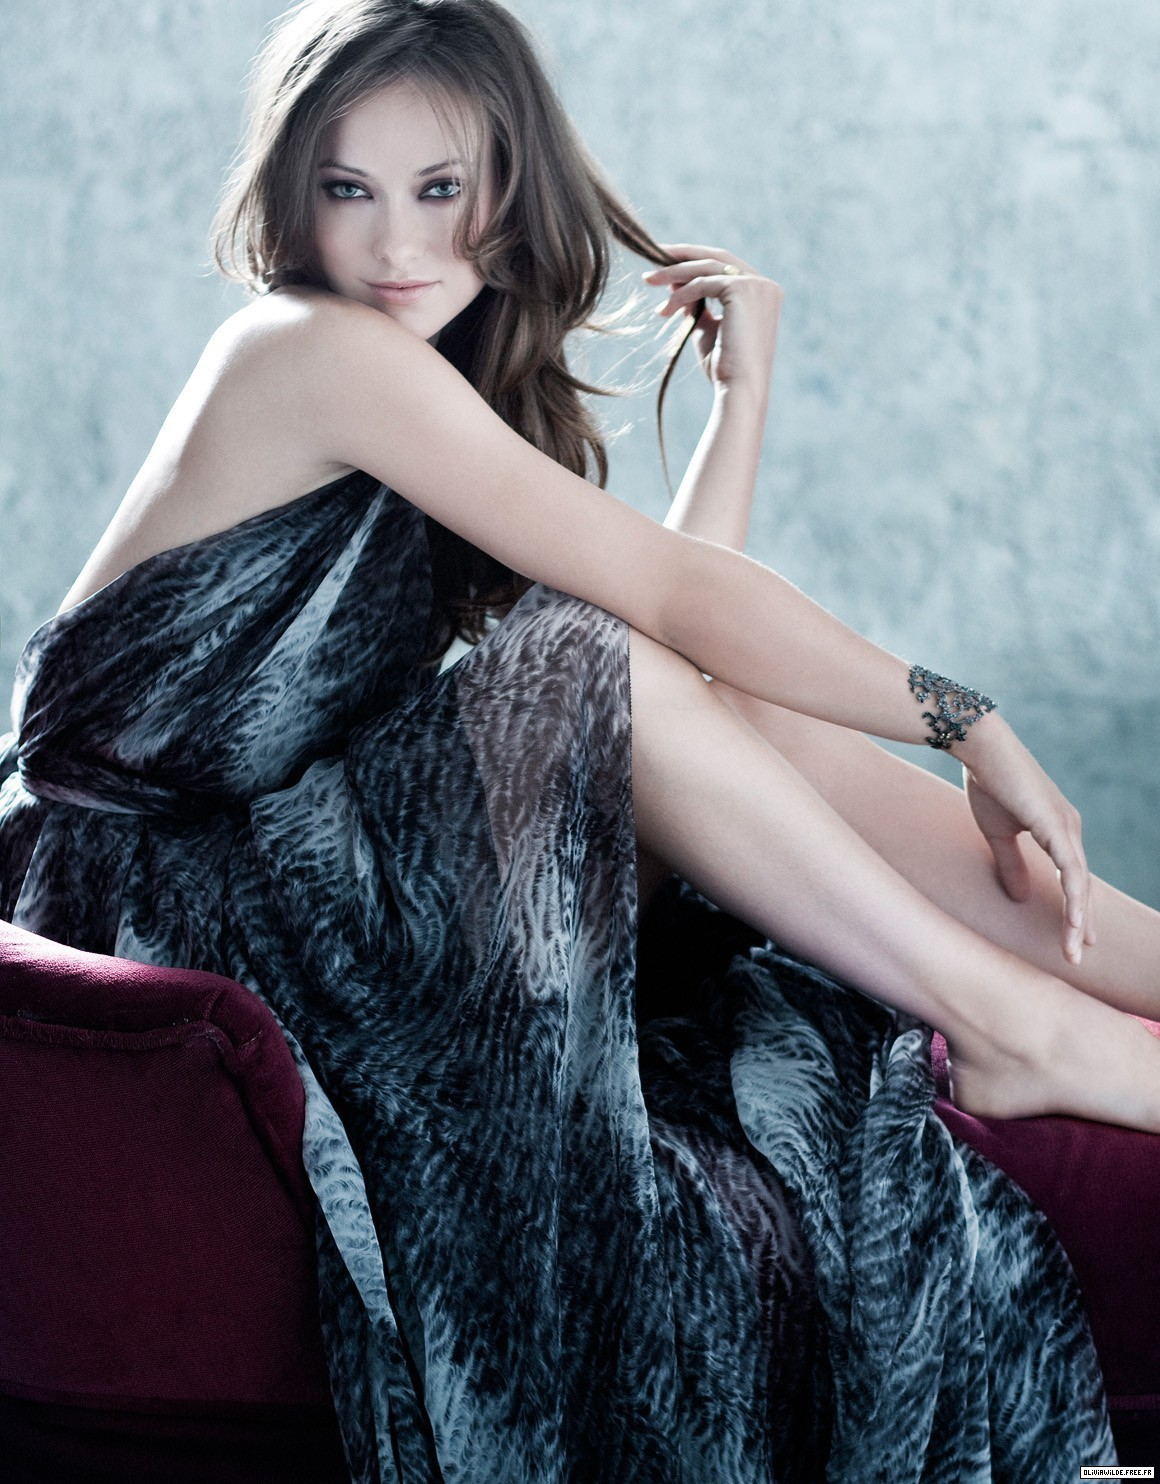 Olivia Wilde Profile And New Pictures 2013: Olivia Wilde's Feet